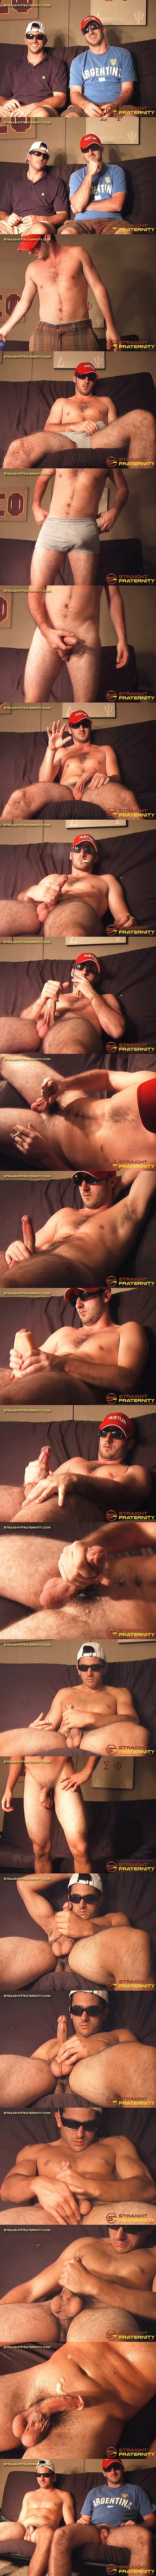 Hot straight dudes, real brothers Jayme and Jayson strip down and jerk off for the first time on camera in Two Real Brothers Compare Cocks at Straightfraternity 01